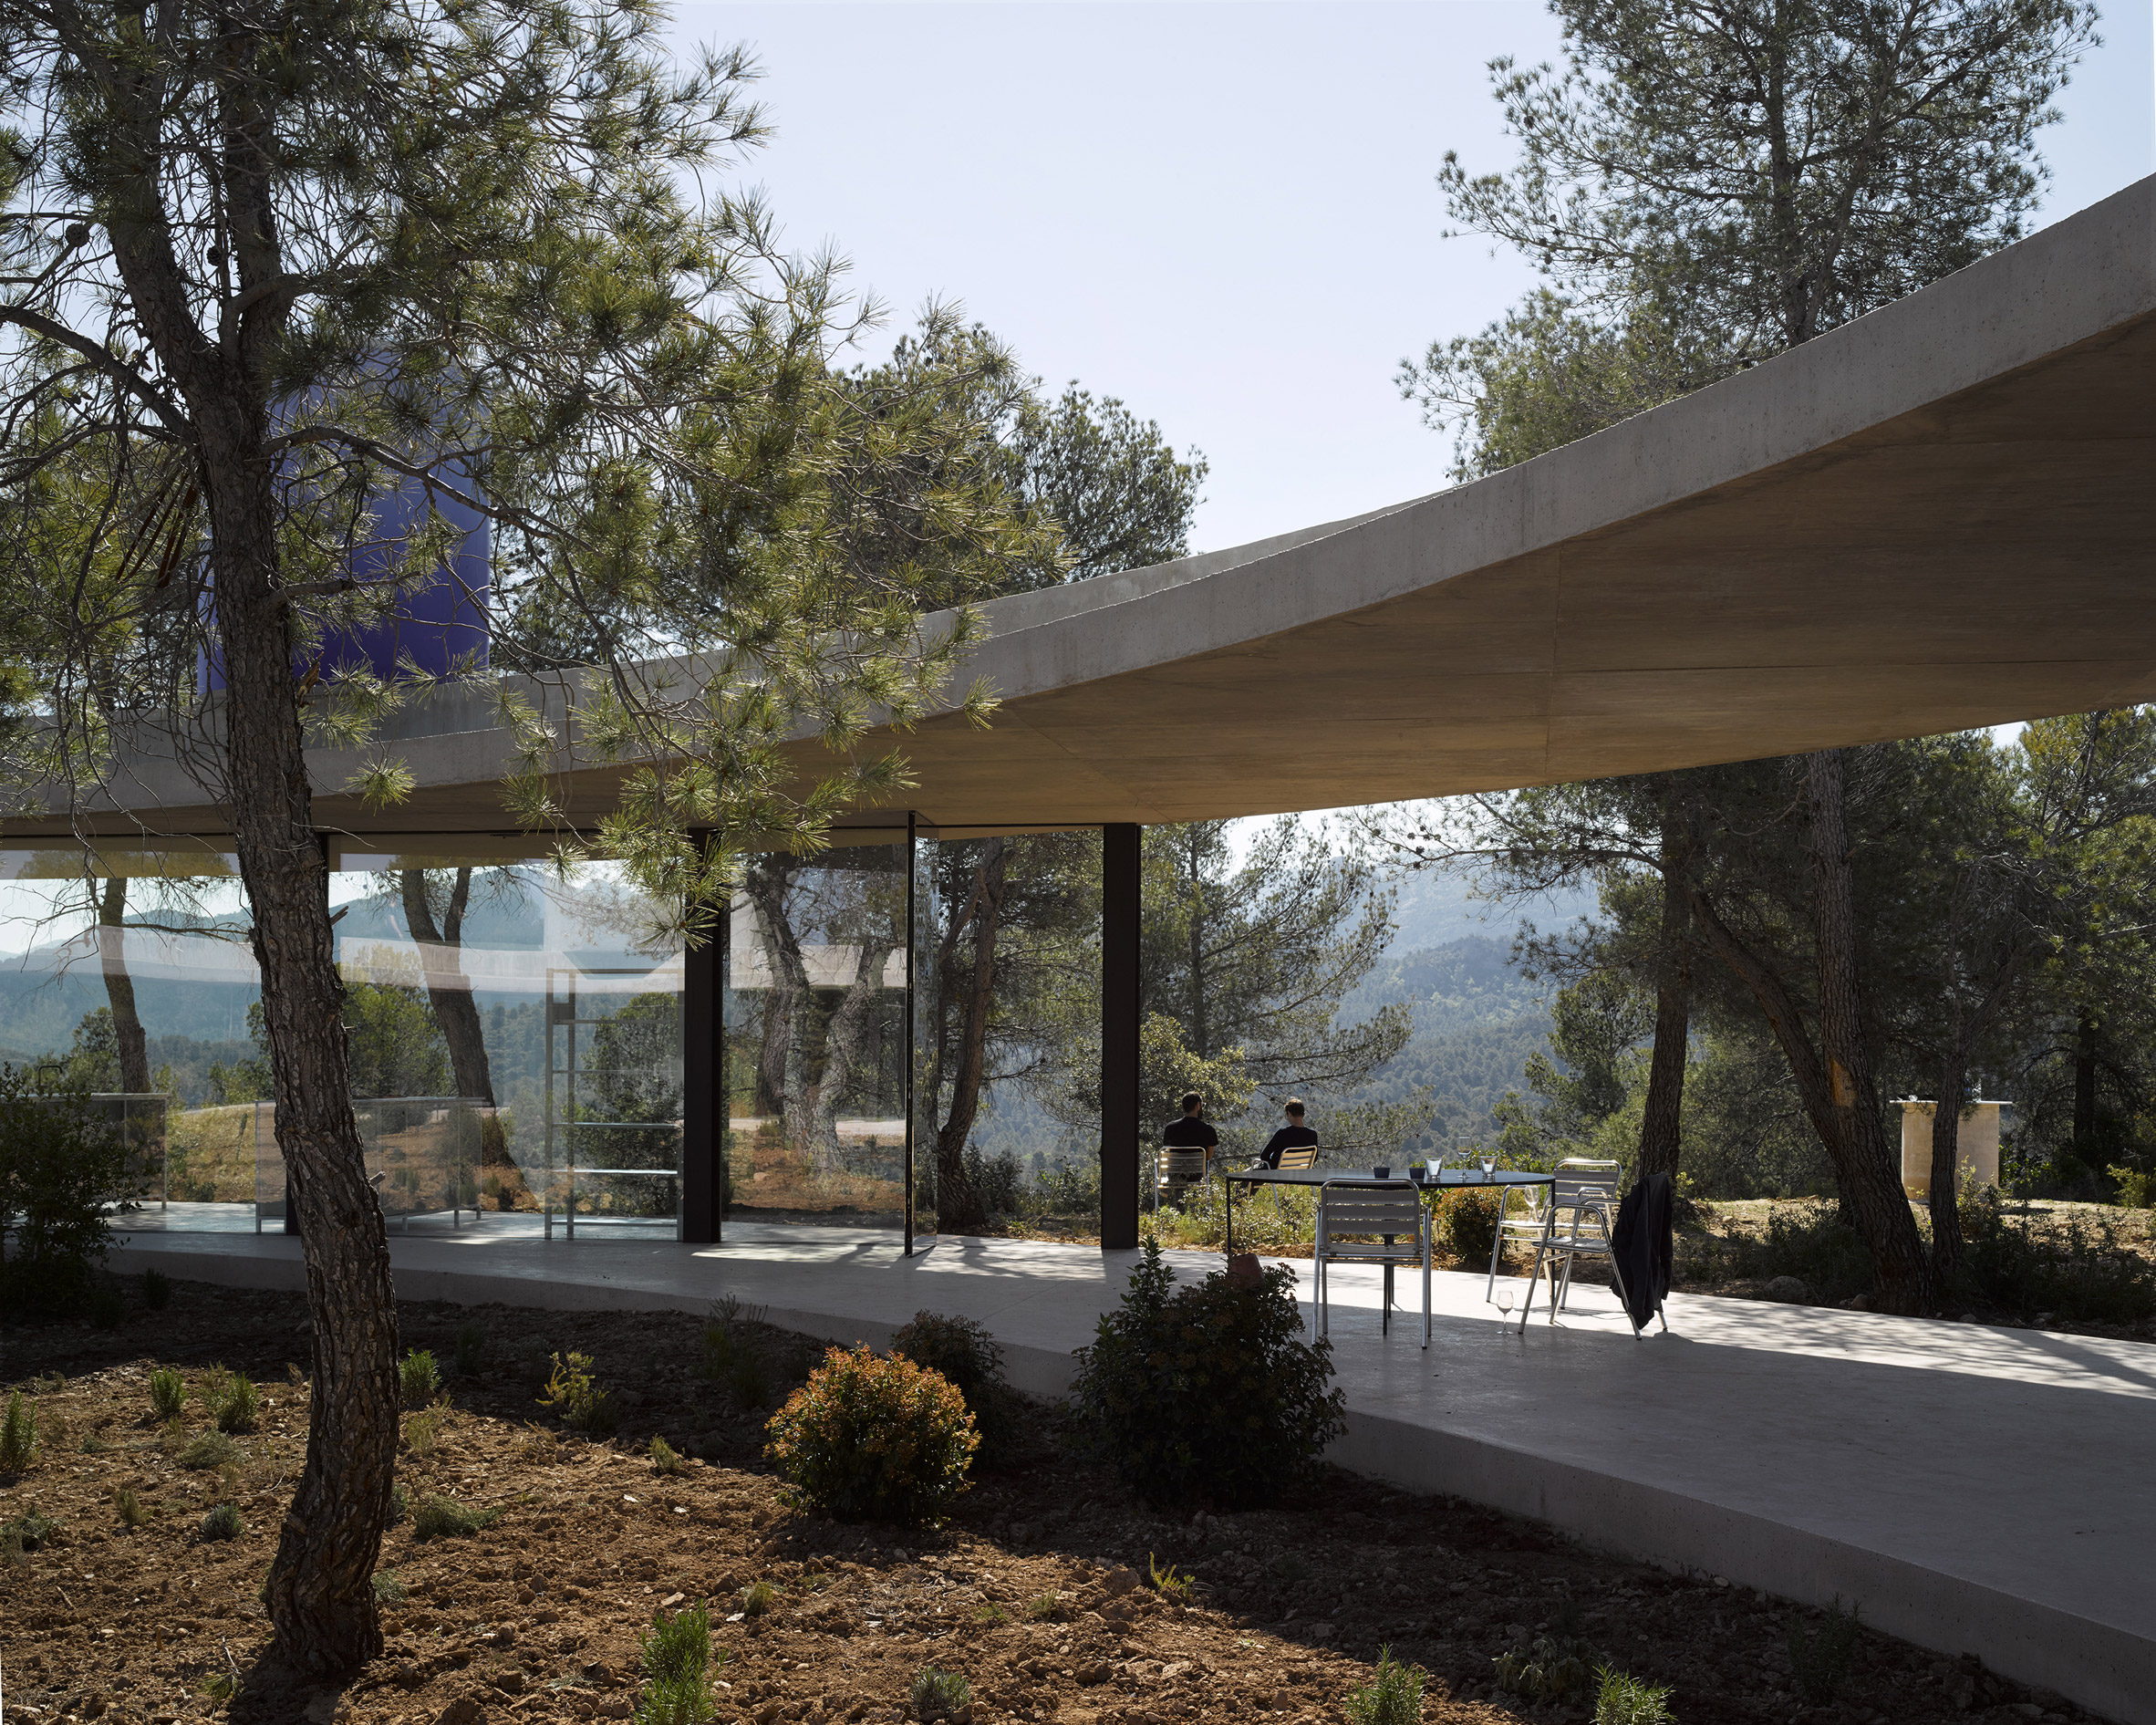 Solo House II by Office KGDVS encircles forested hilltop in Matarraña